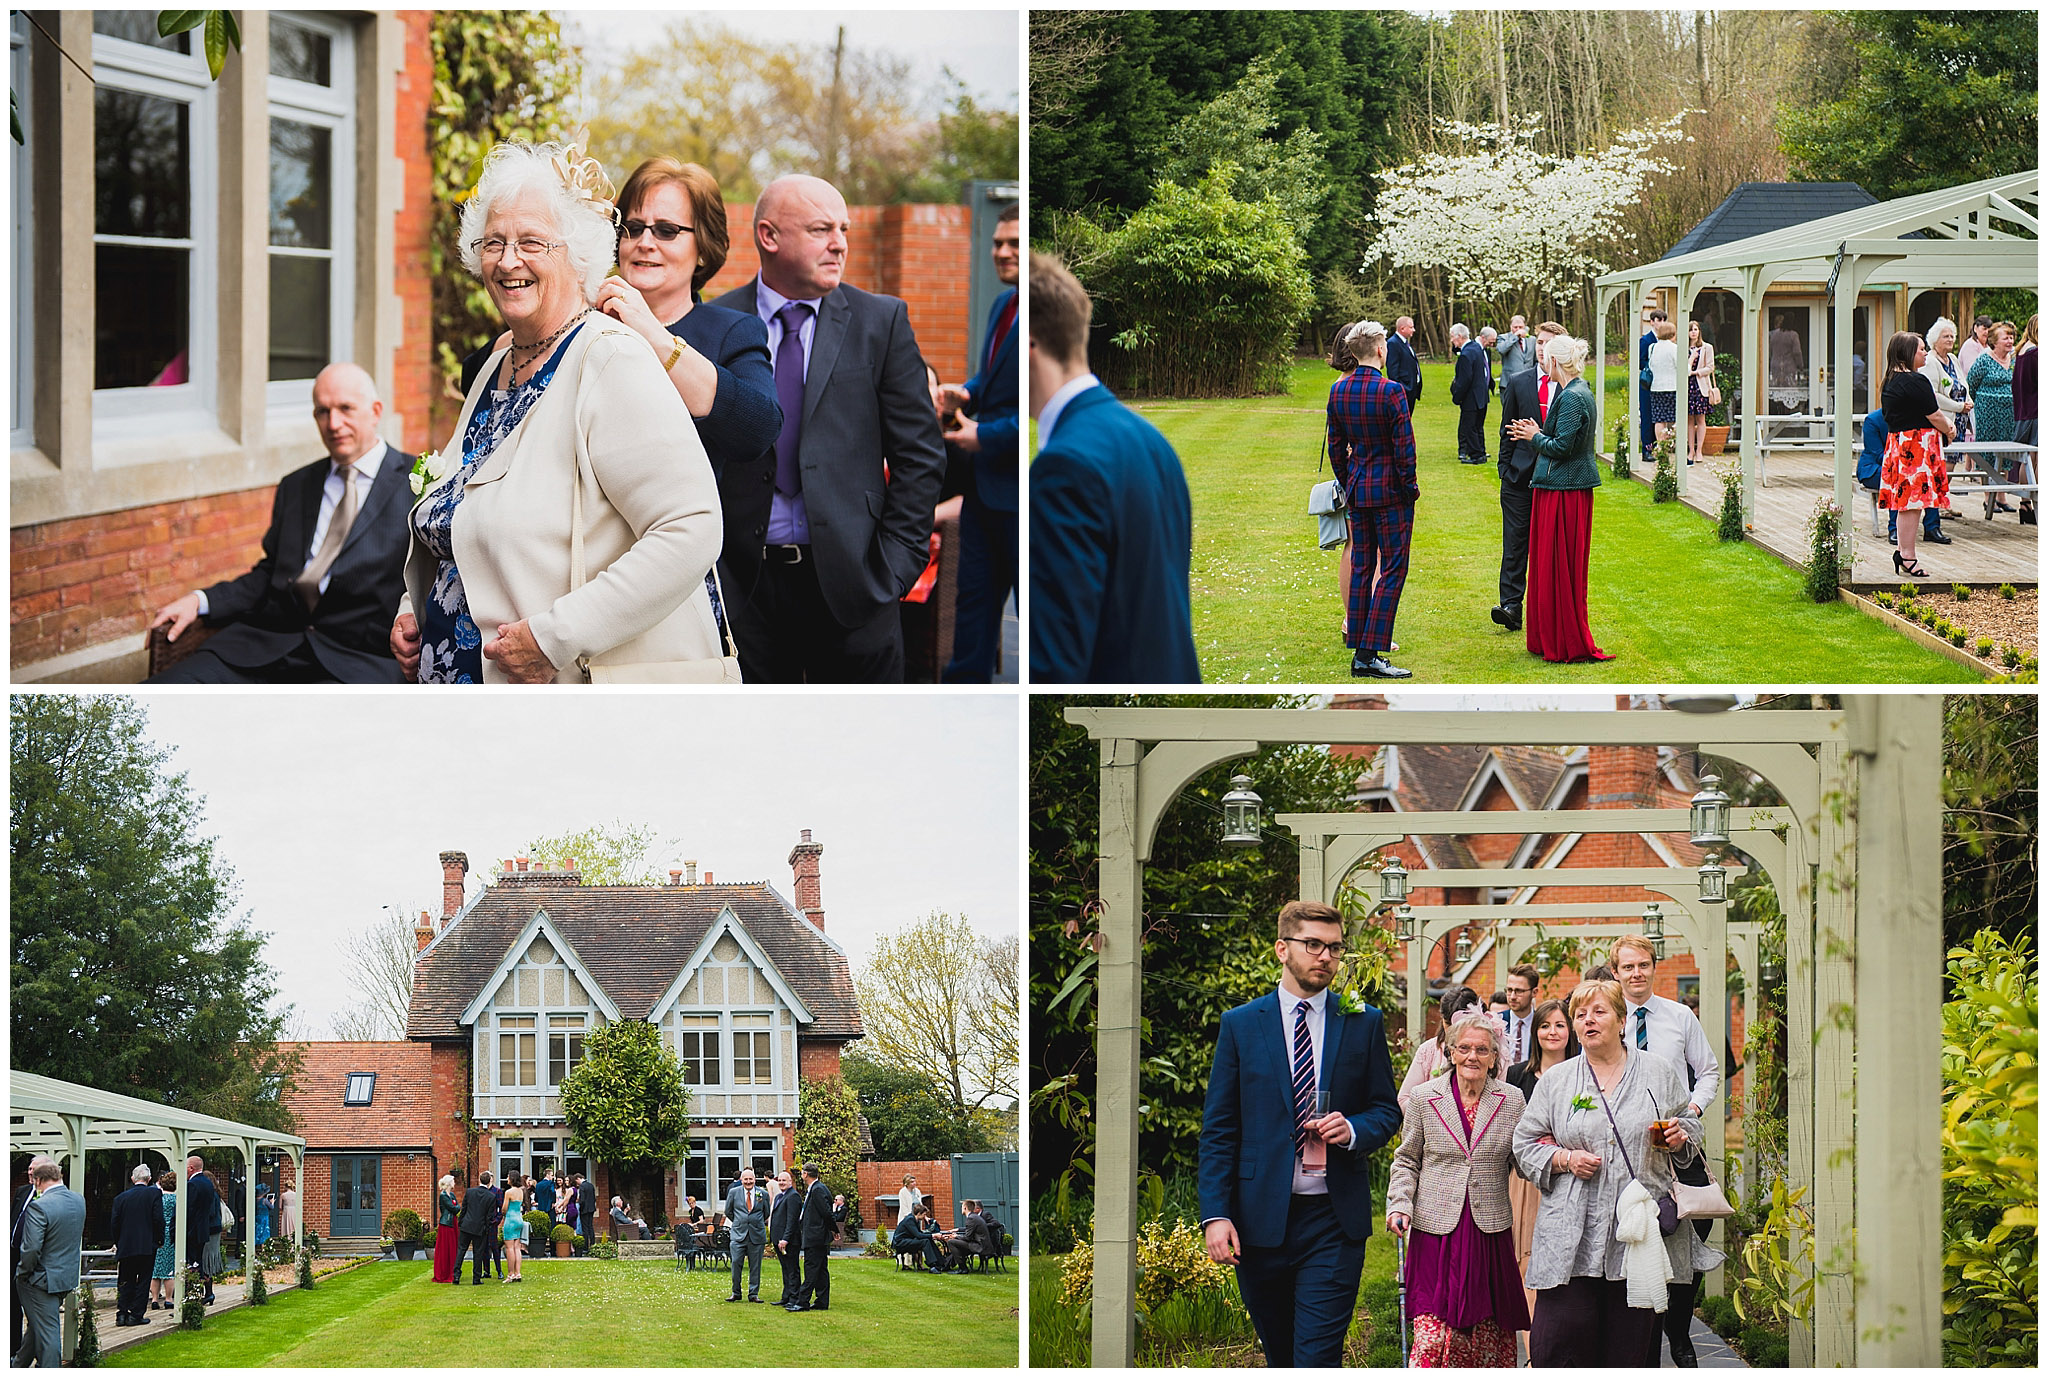 Sarah-&-Dan-The-Old-Vicarage-Wedding-Venue-Dorset-Photographer-6